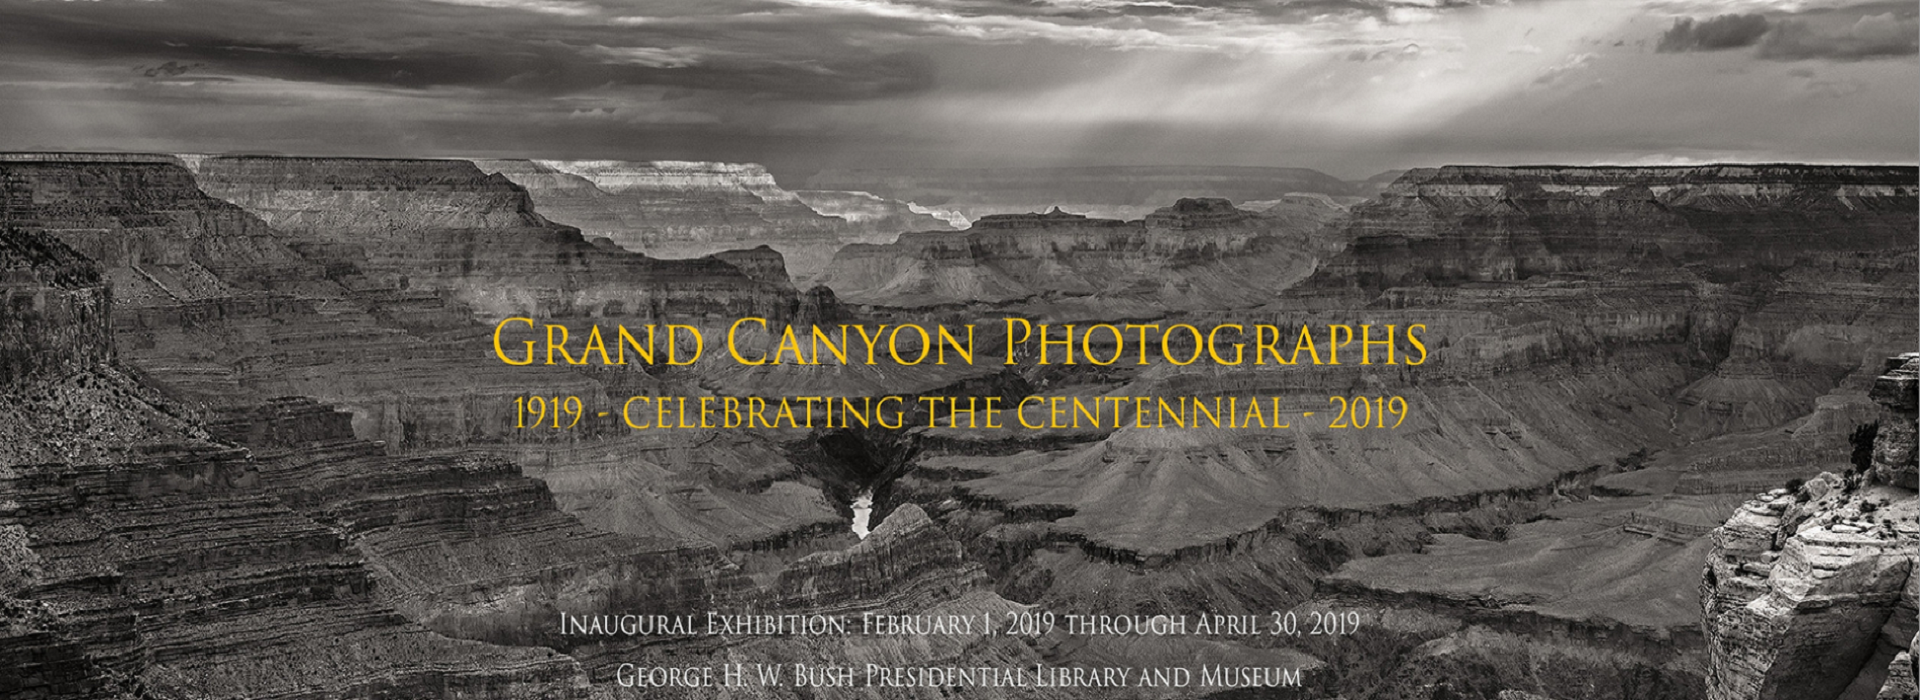 Grand Canyon exhibit photograph